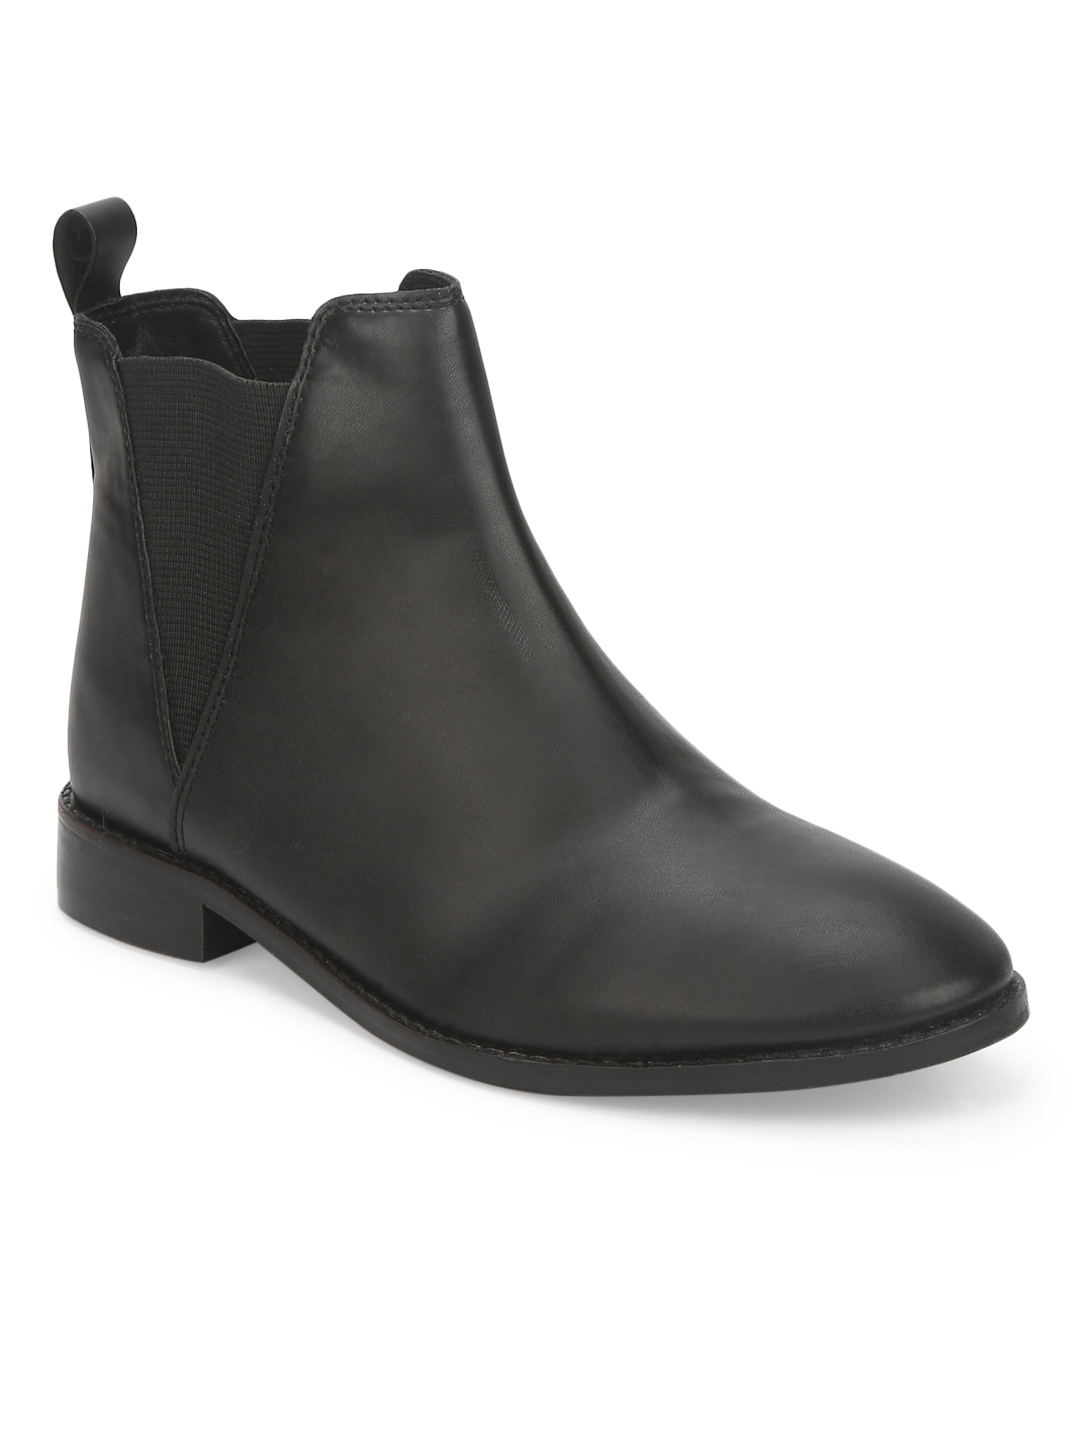 Truffle Collection | Black PU Slip On Low Ankle Boots